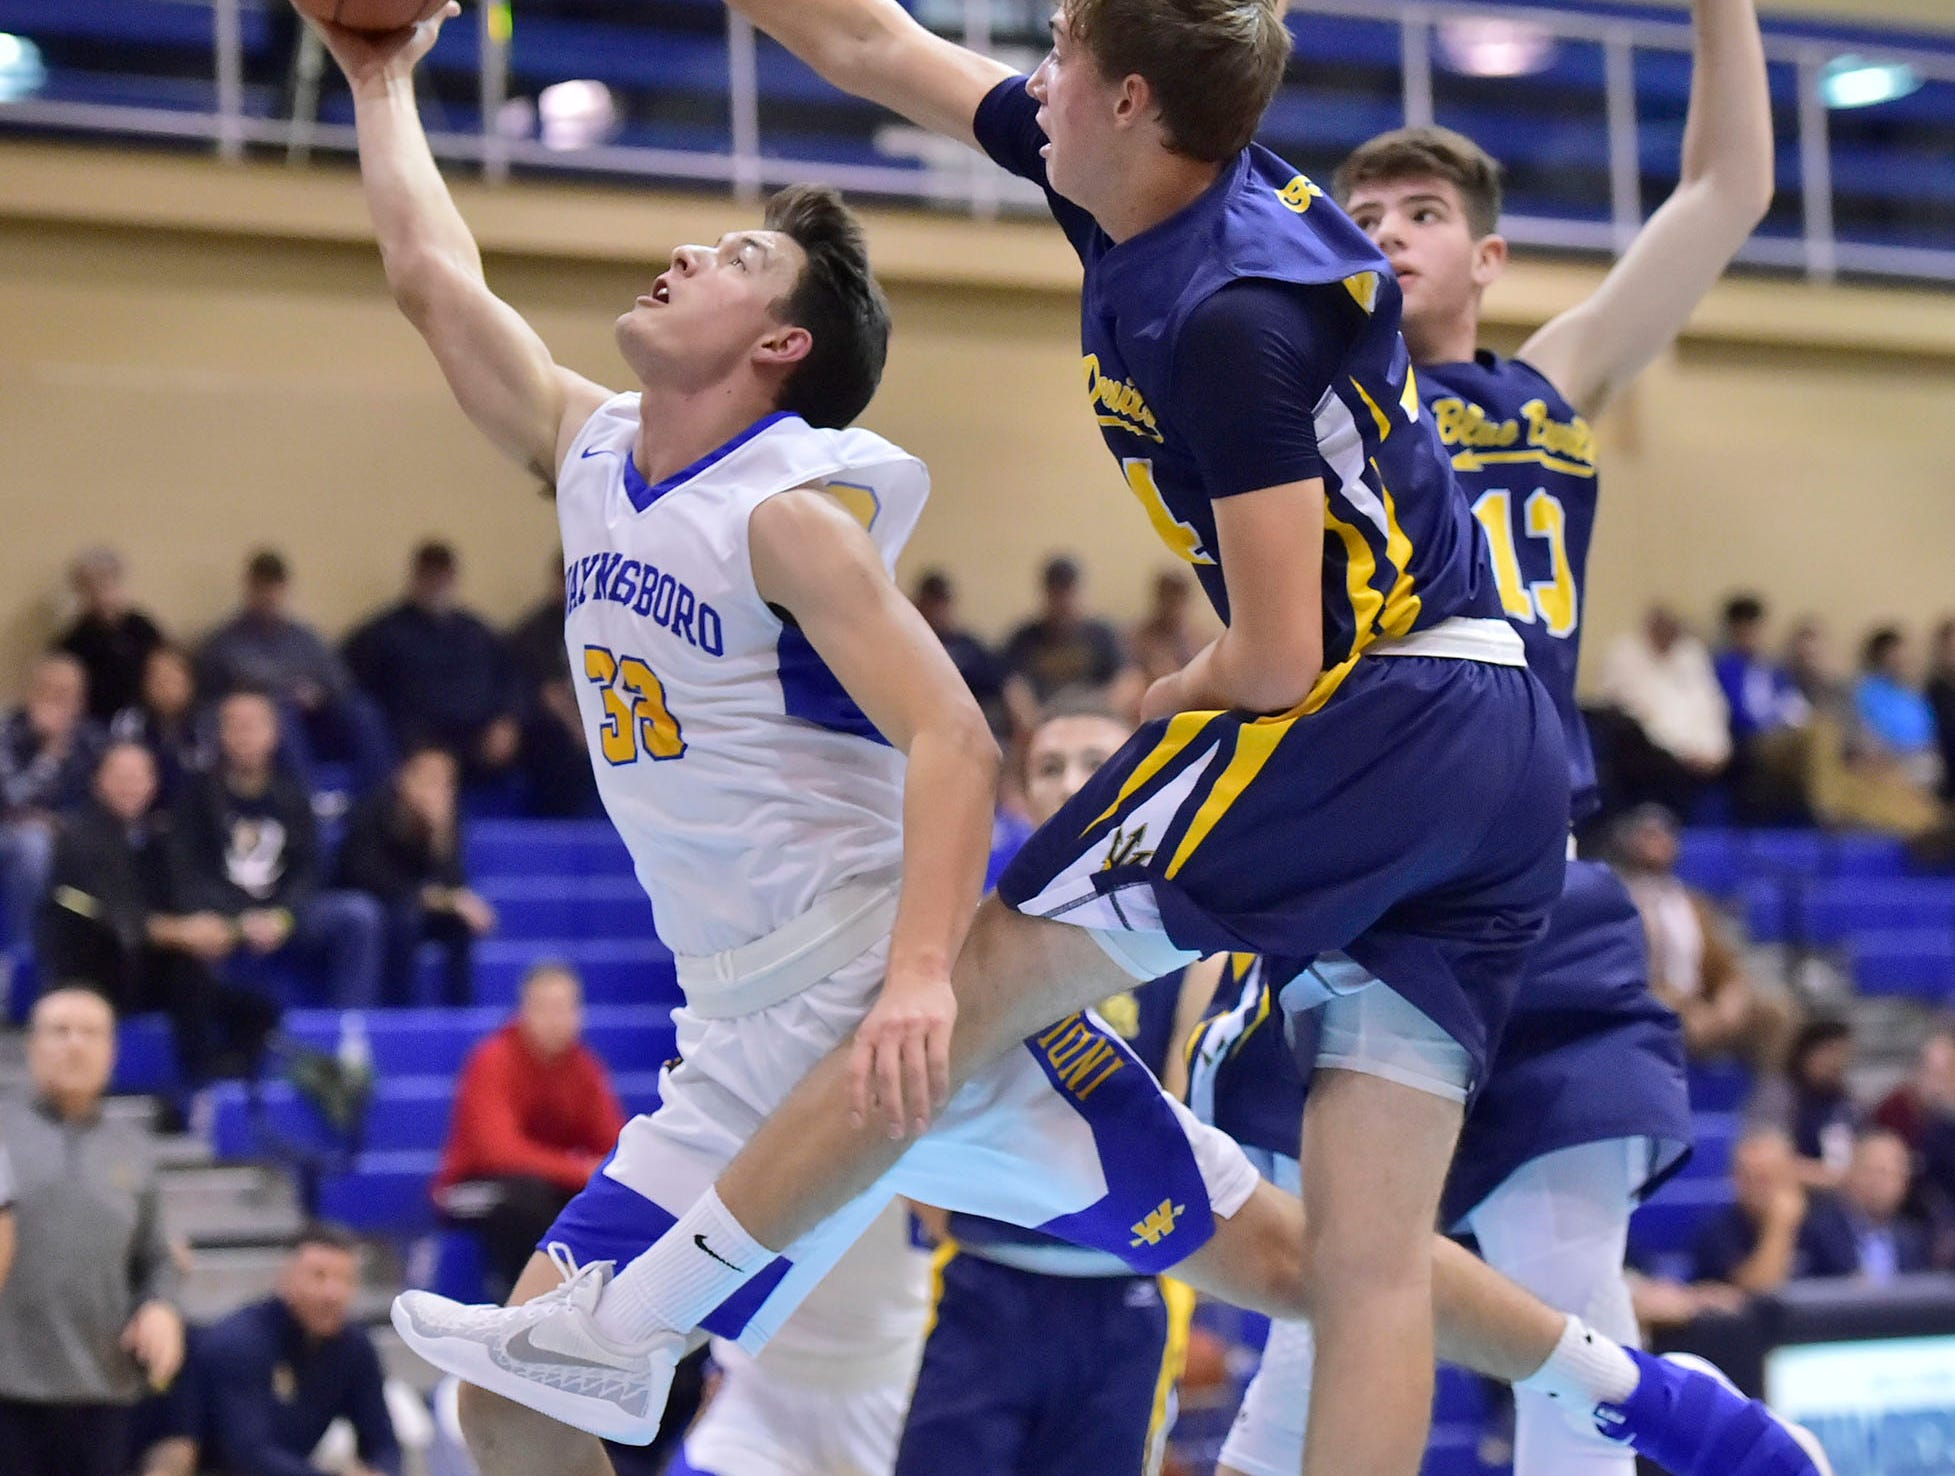 Waynesboro's Hunter Clever (33)  shoots over Greencastle defenders during the Franklin County Tip-Off Tournament, Friday, Dec. 7, 2018.